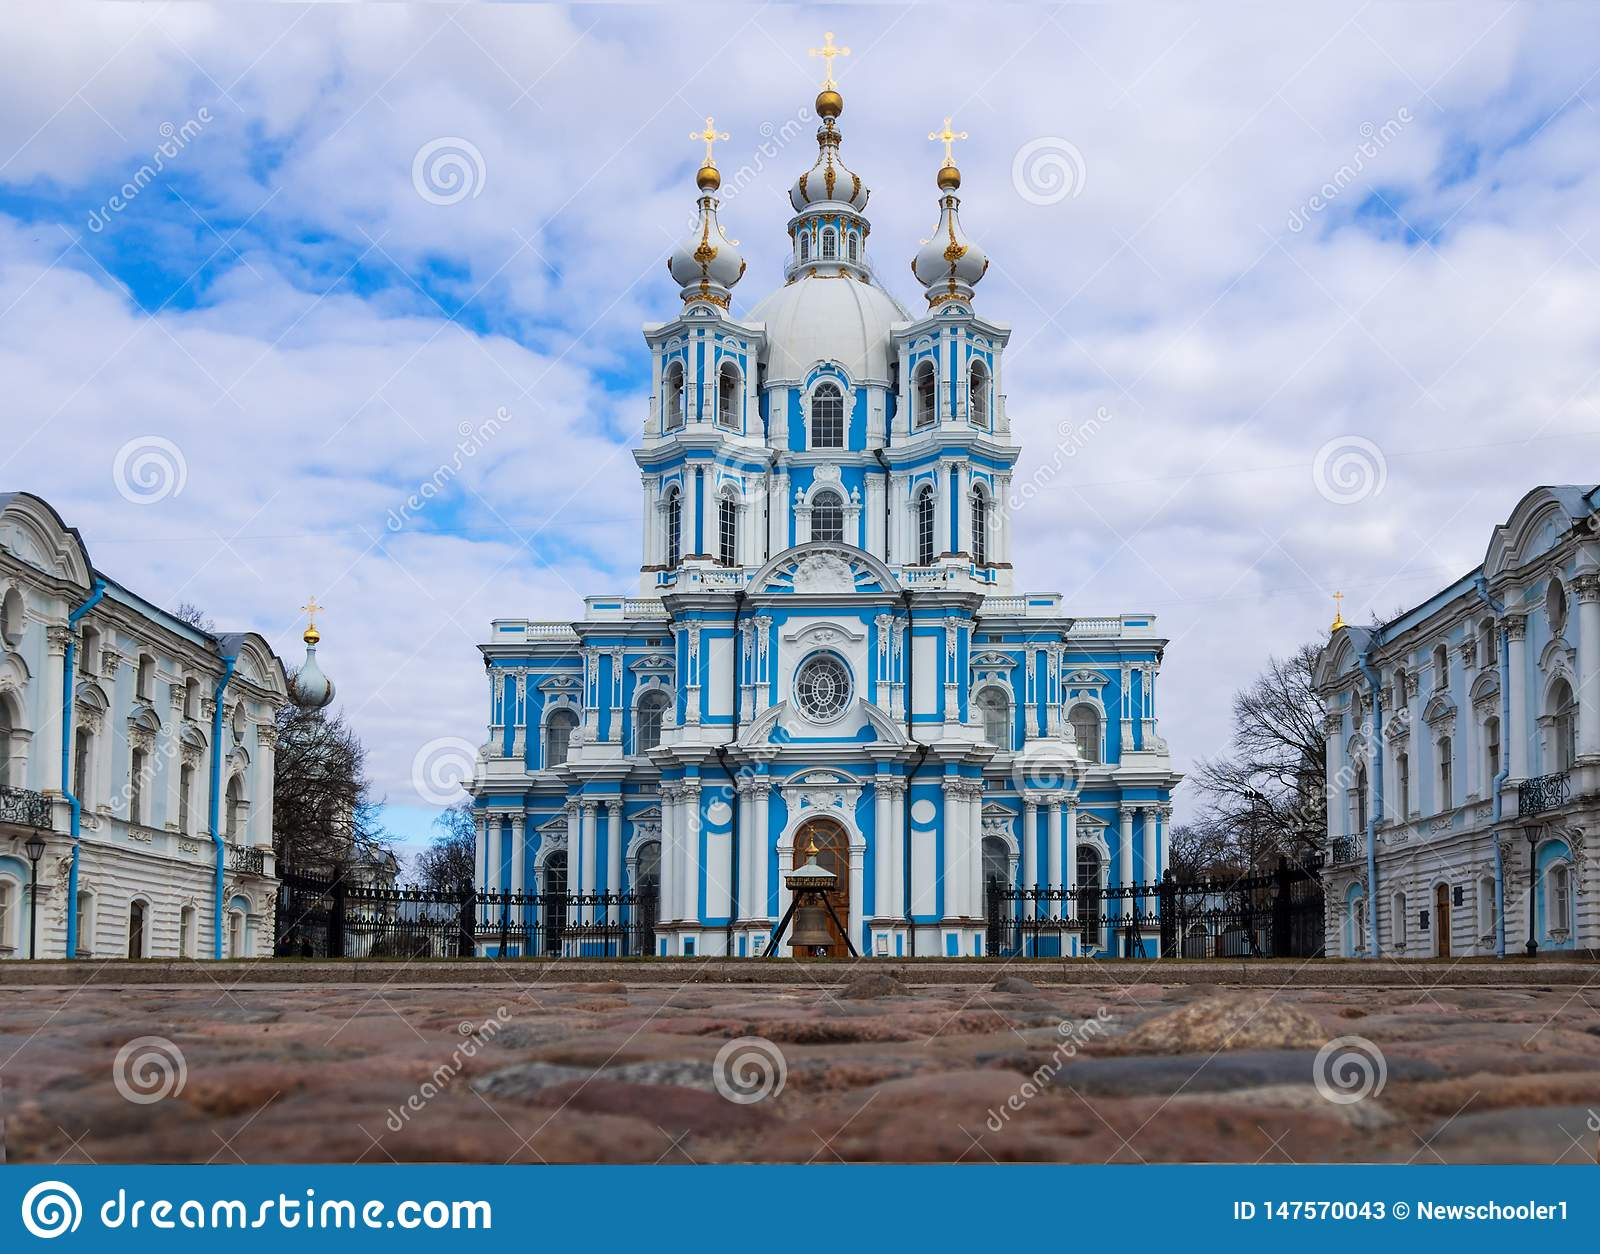 St. Petersburg, Russia, 2019-04-13: Smolny Cathedral